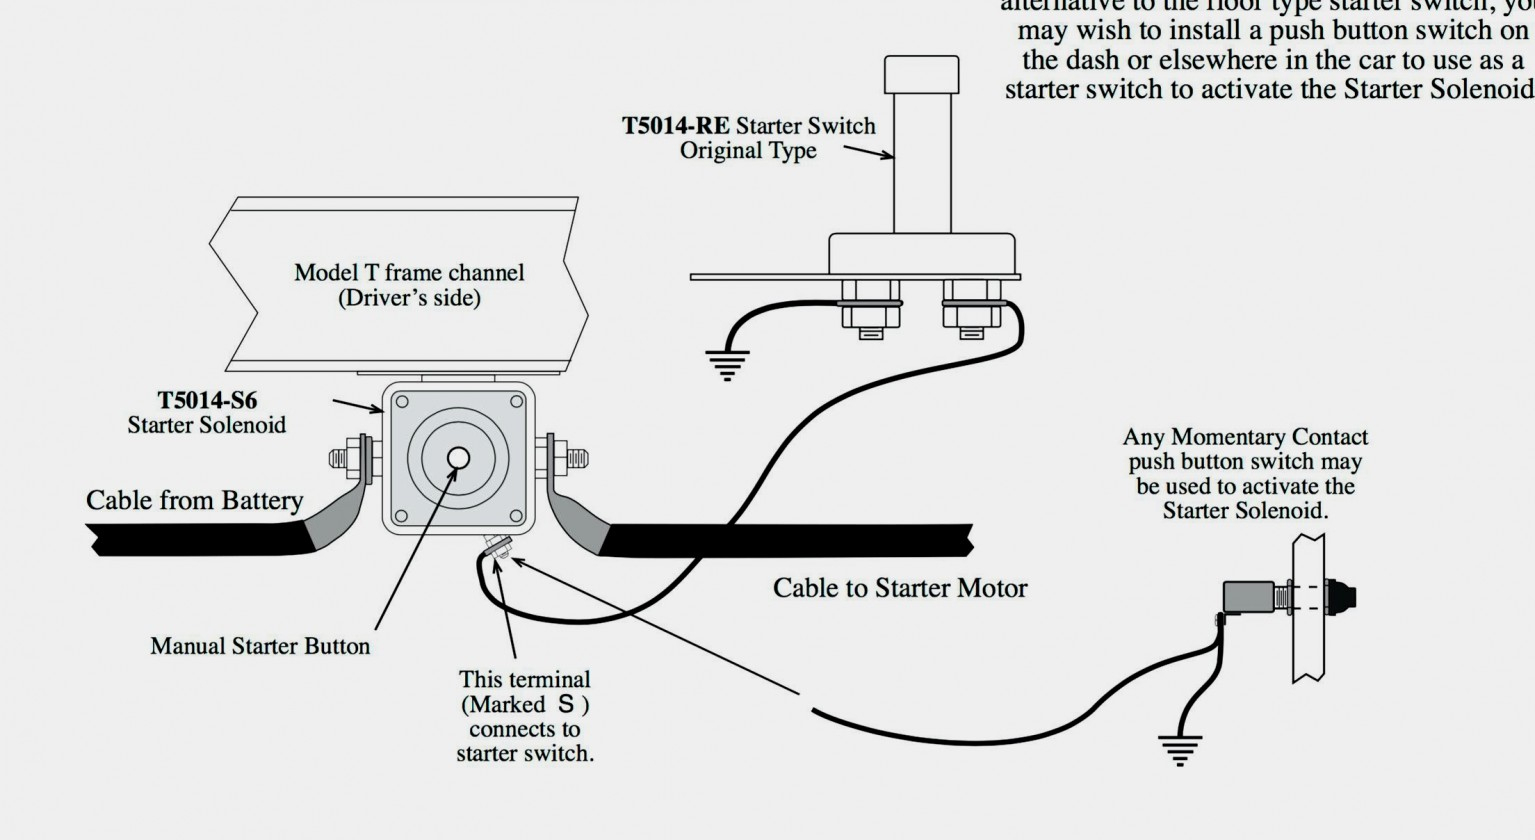 Gm Starter Solenoid Wiring Diagram from 2020cadillac.com